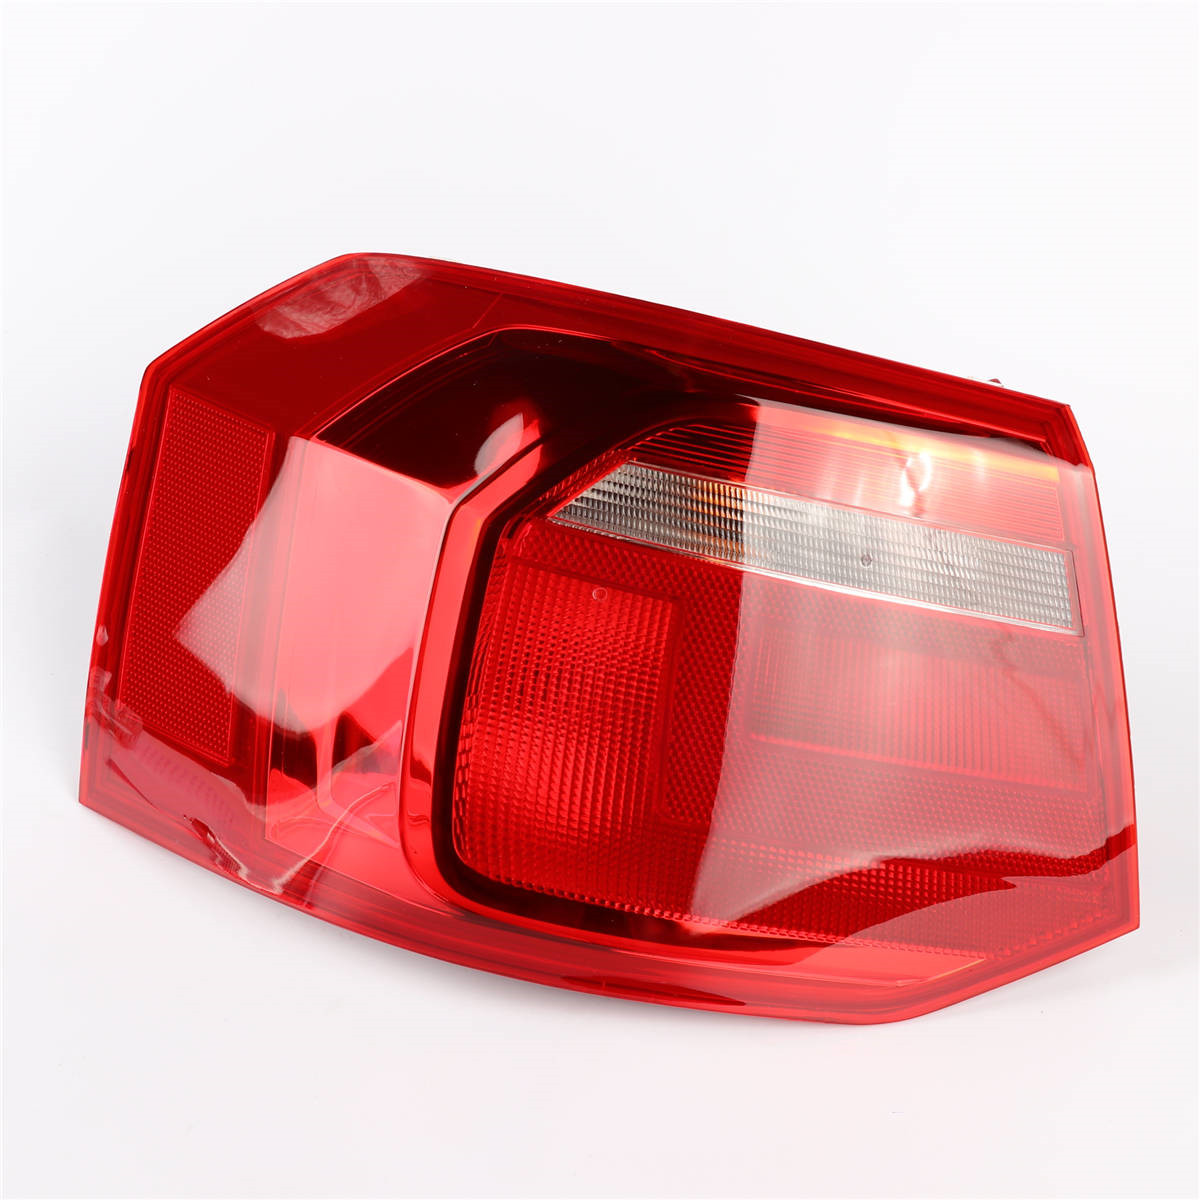 Left Side OEM 1Pcs Red Color LED Light Tail Lights Rear Lamp For Volkswagen VW Jetta 2013-2019 MK6 31G 945 095 цена